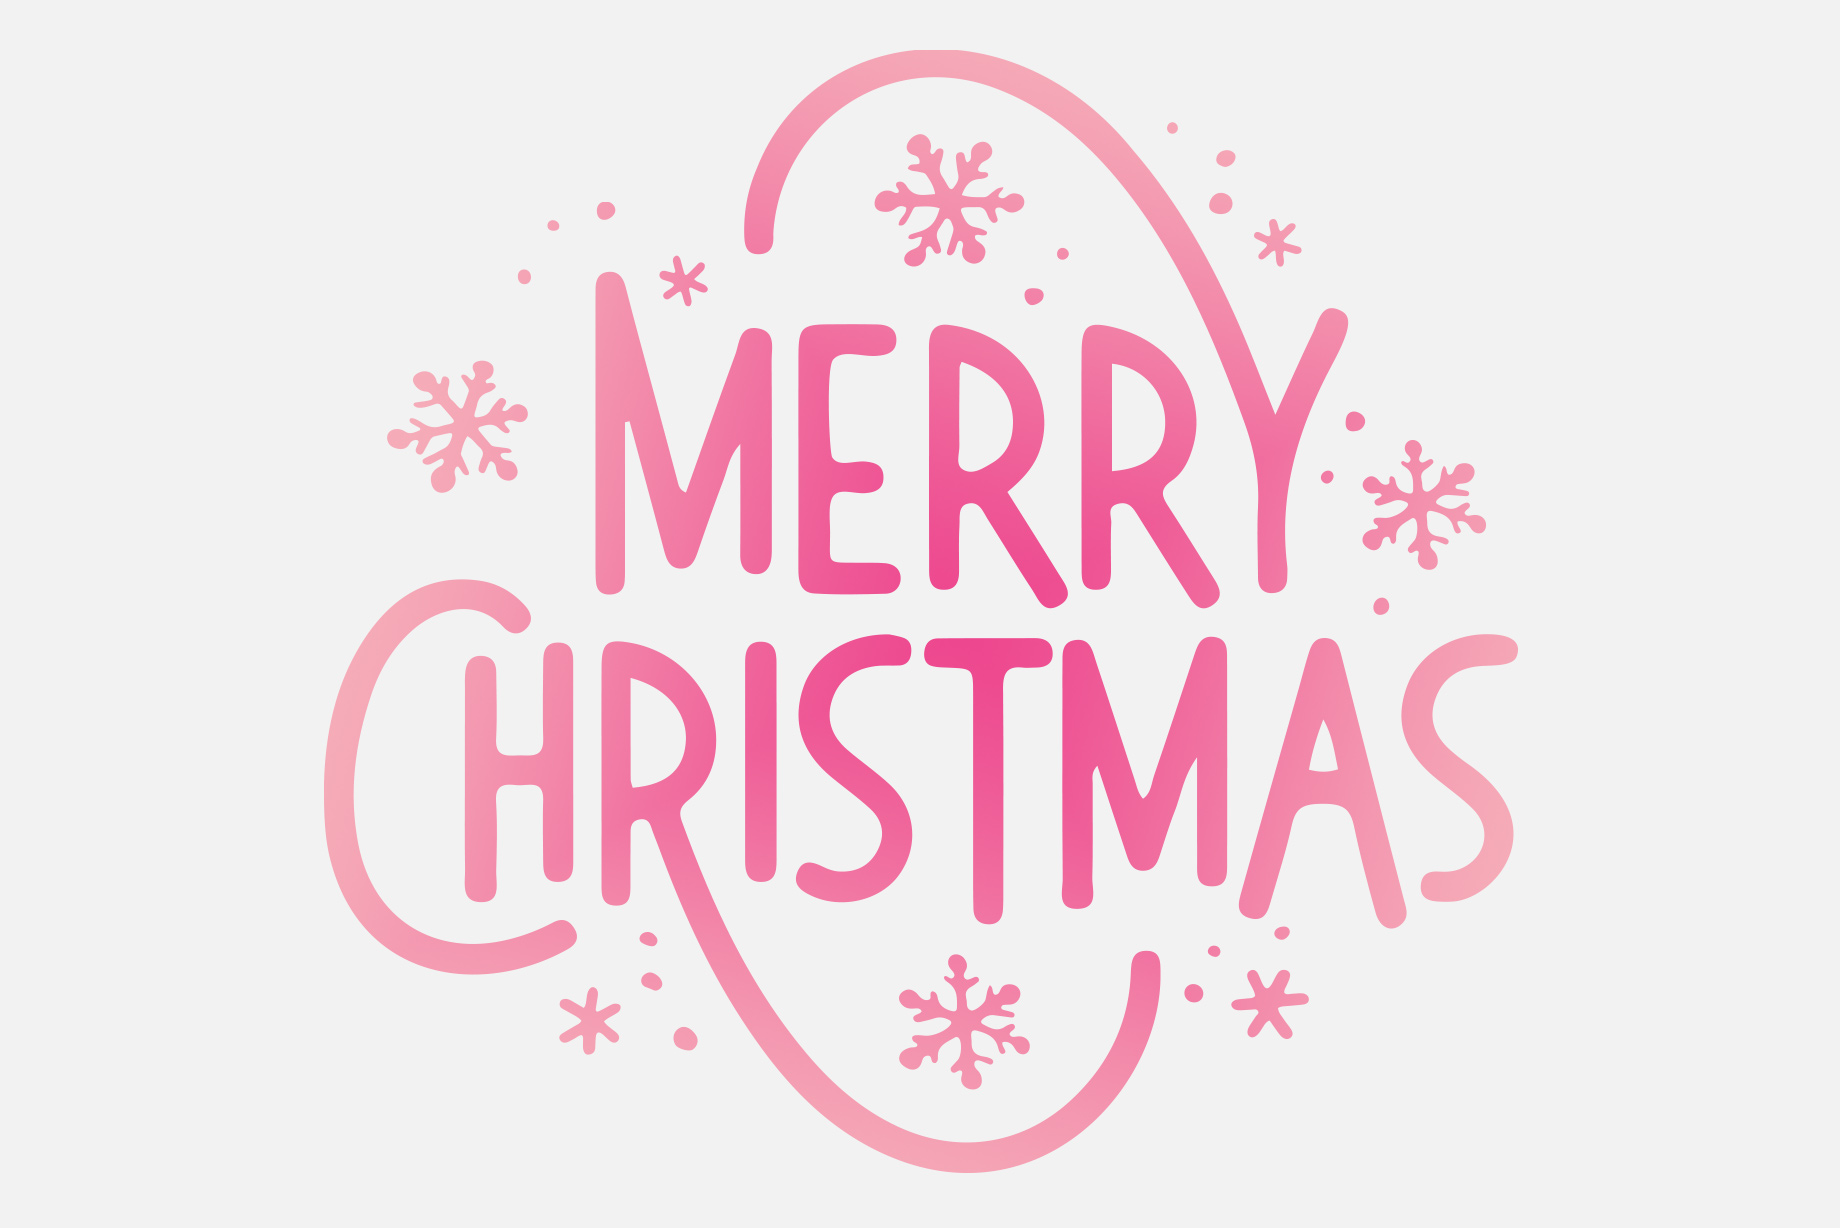 Merry Christmas from Scentbird